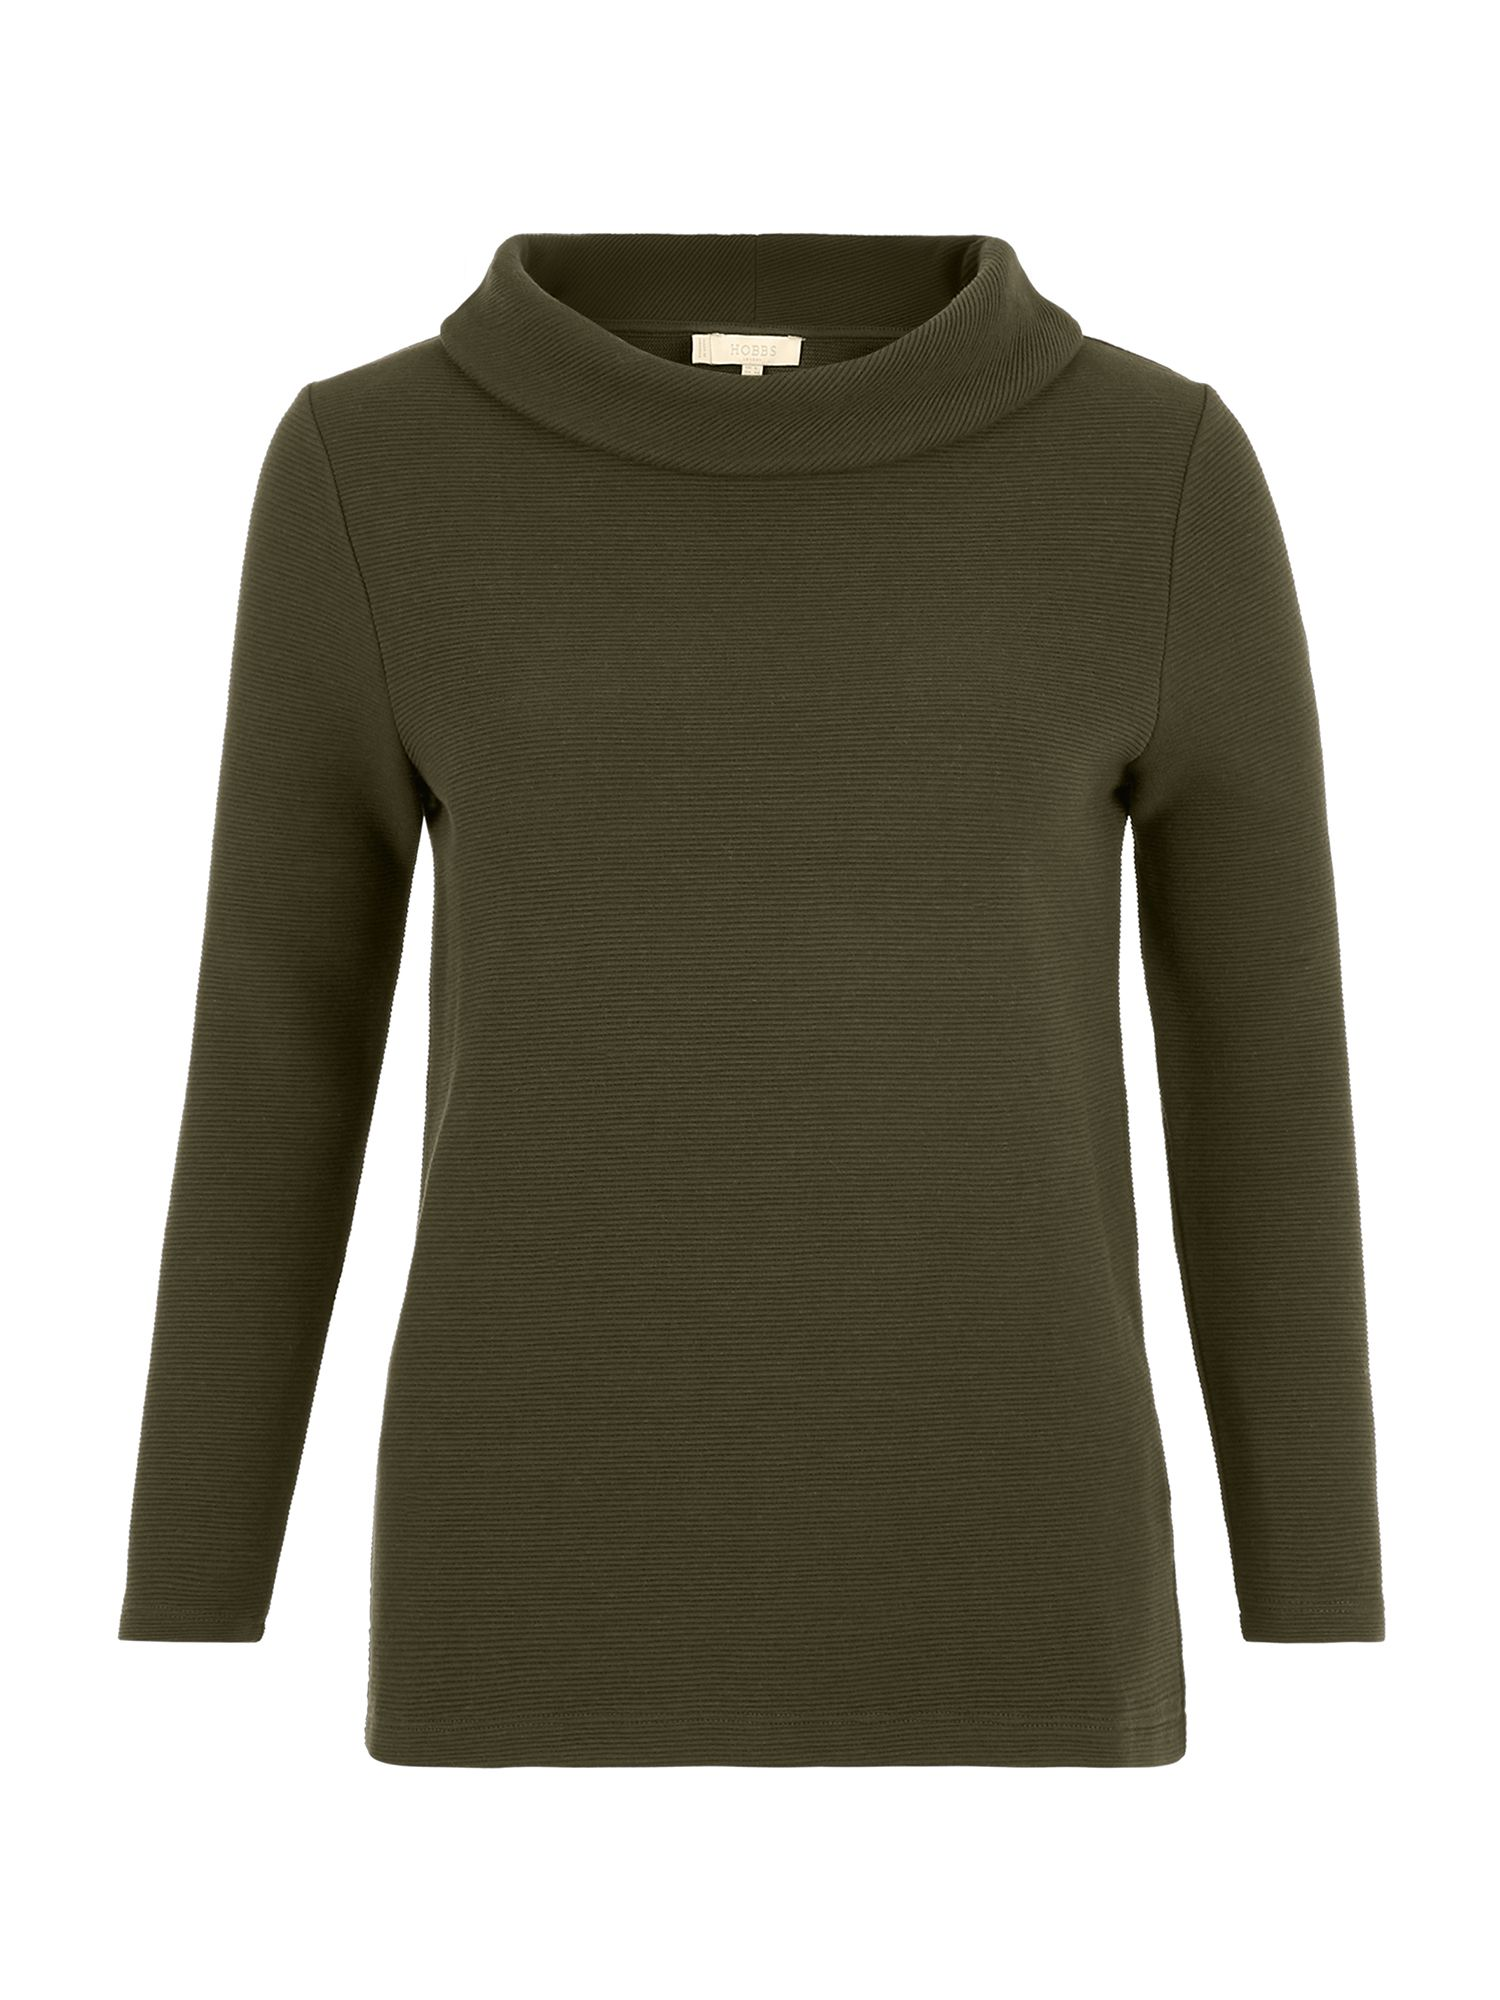 Hobbs Coleta Top, Green